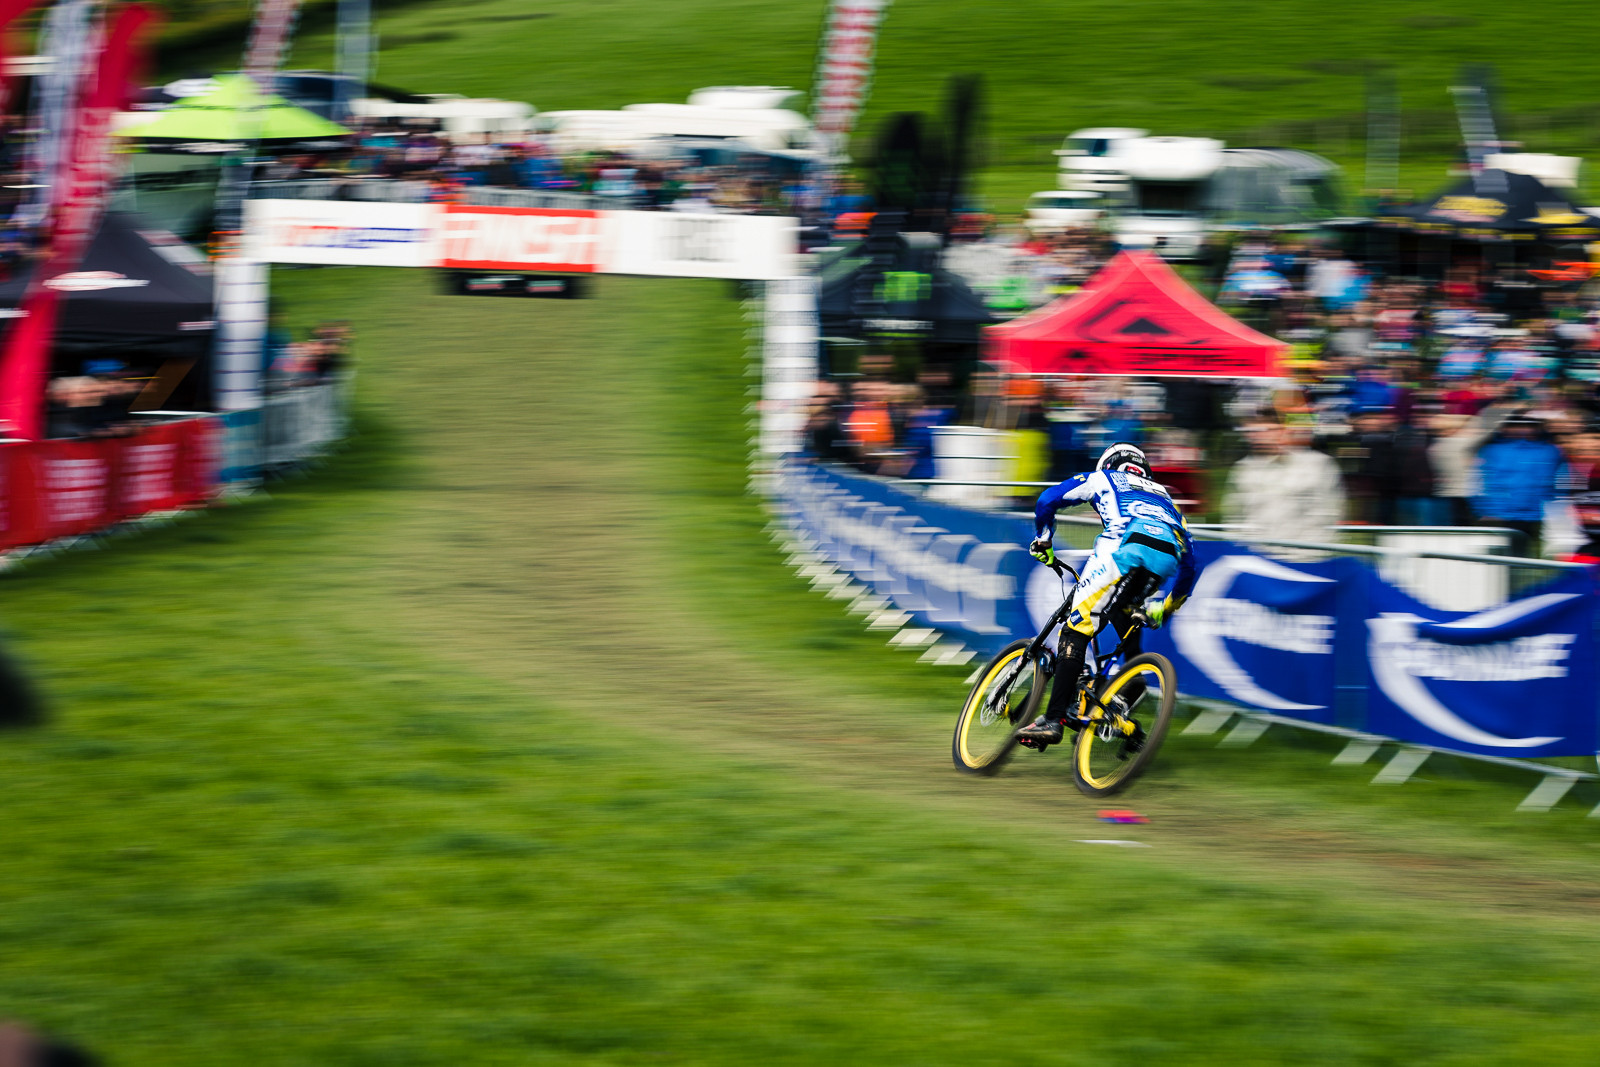 Mike Jones, British Downhill Series Langollen - RACE REPORT - British Downhill Series Llangollen - Mountain Biking Pictures - Vital MTB